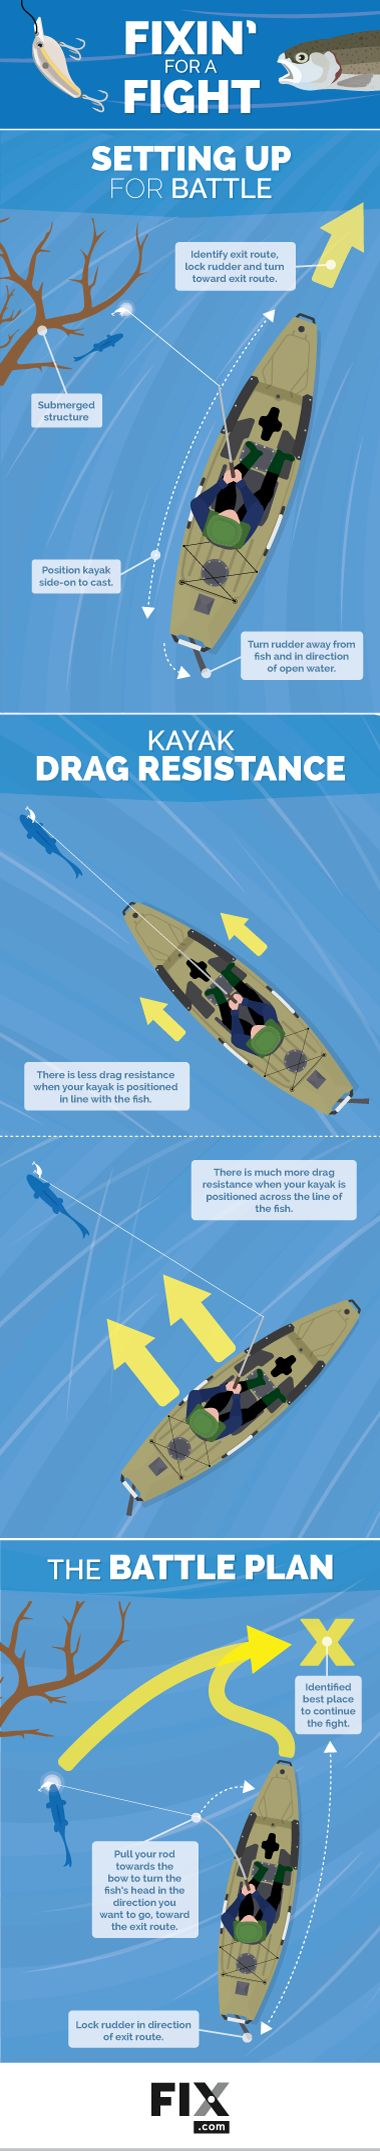 Kayak fishing can be challenging for even the most experience anglers. Our guide highlights the best techniques to use when battling the catch-of-the-day.